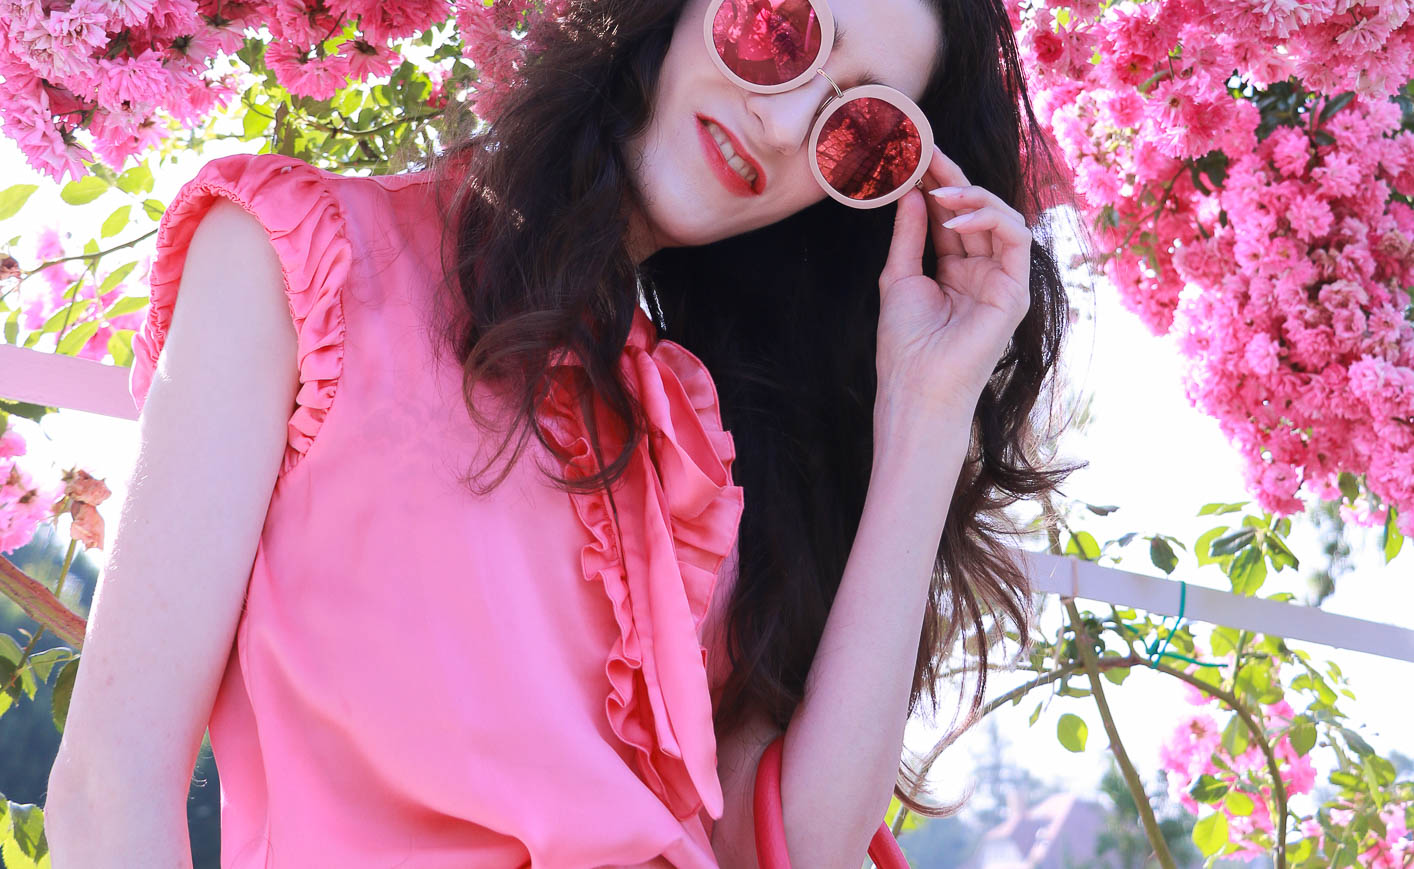 Fashion Blogger Veronika Lipar of Brunette from Wall Street wearing bold red lipstick, glowing makeup, pink round sunglasses